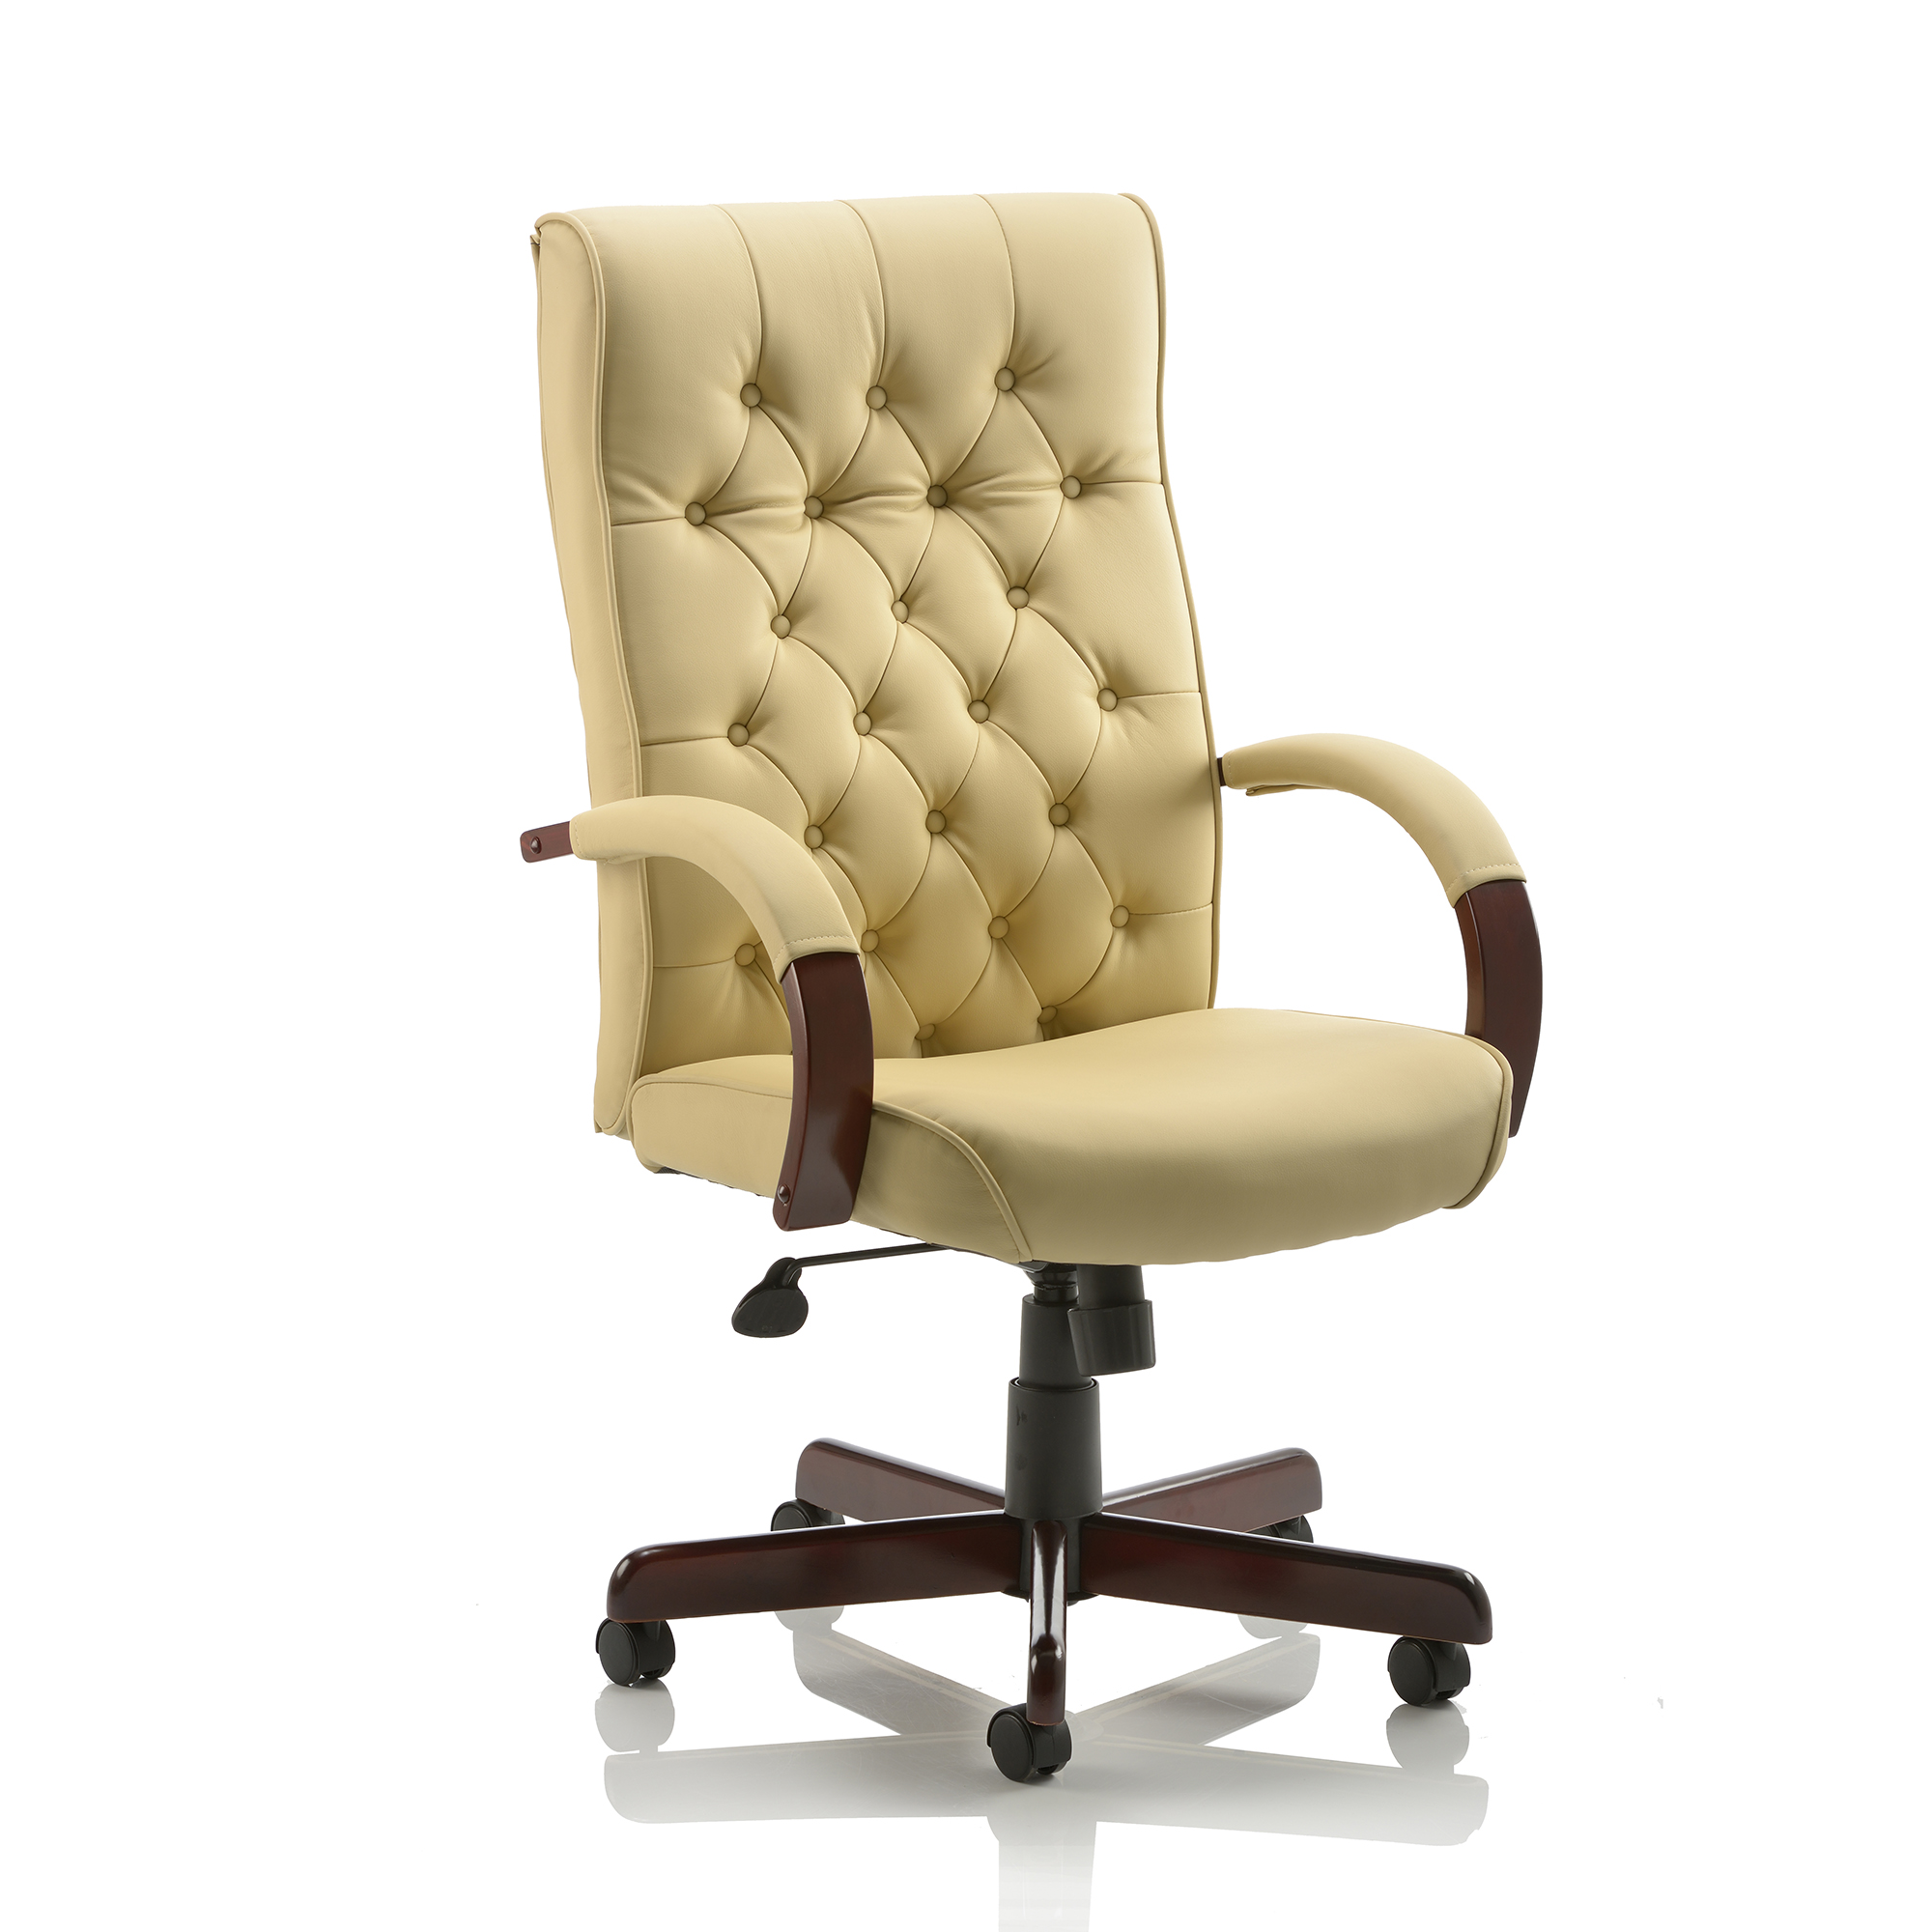 Executive seating Trexus Chesterfield Executive Chair With Arms Leather Cream Ref EX000005